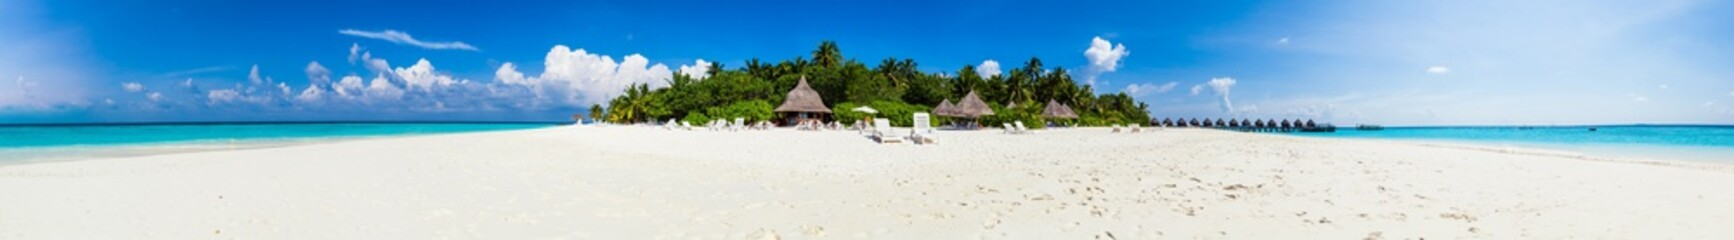 Panorama of a tropical island with white sand and palms.